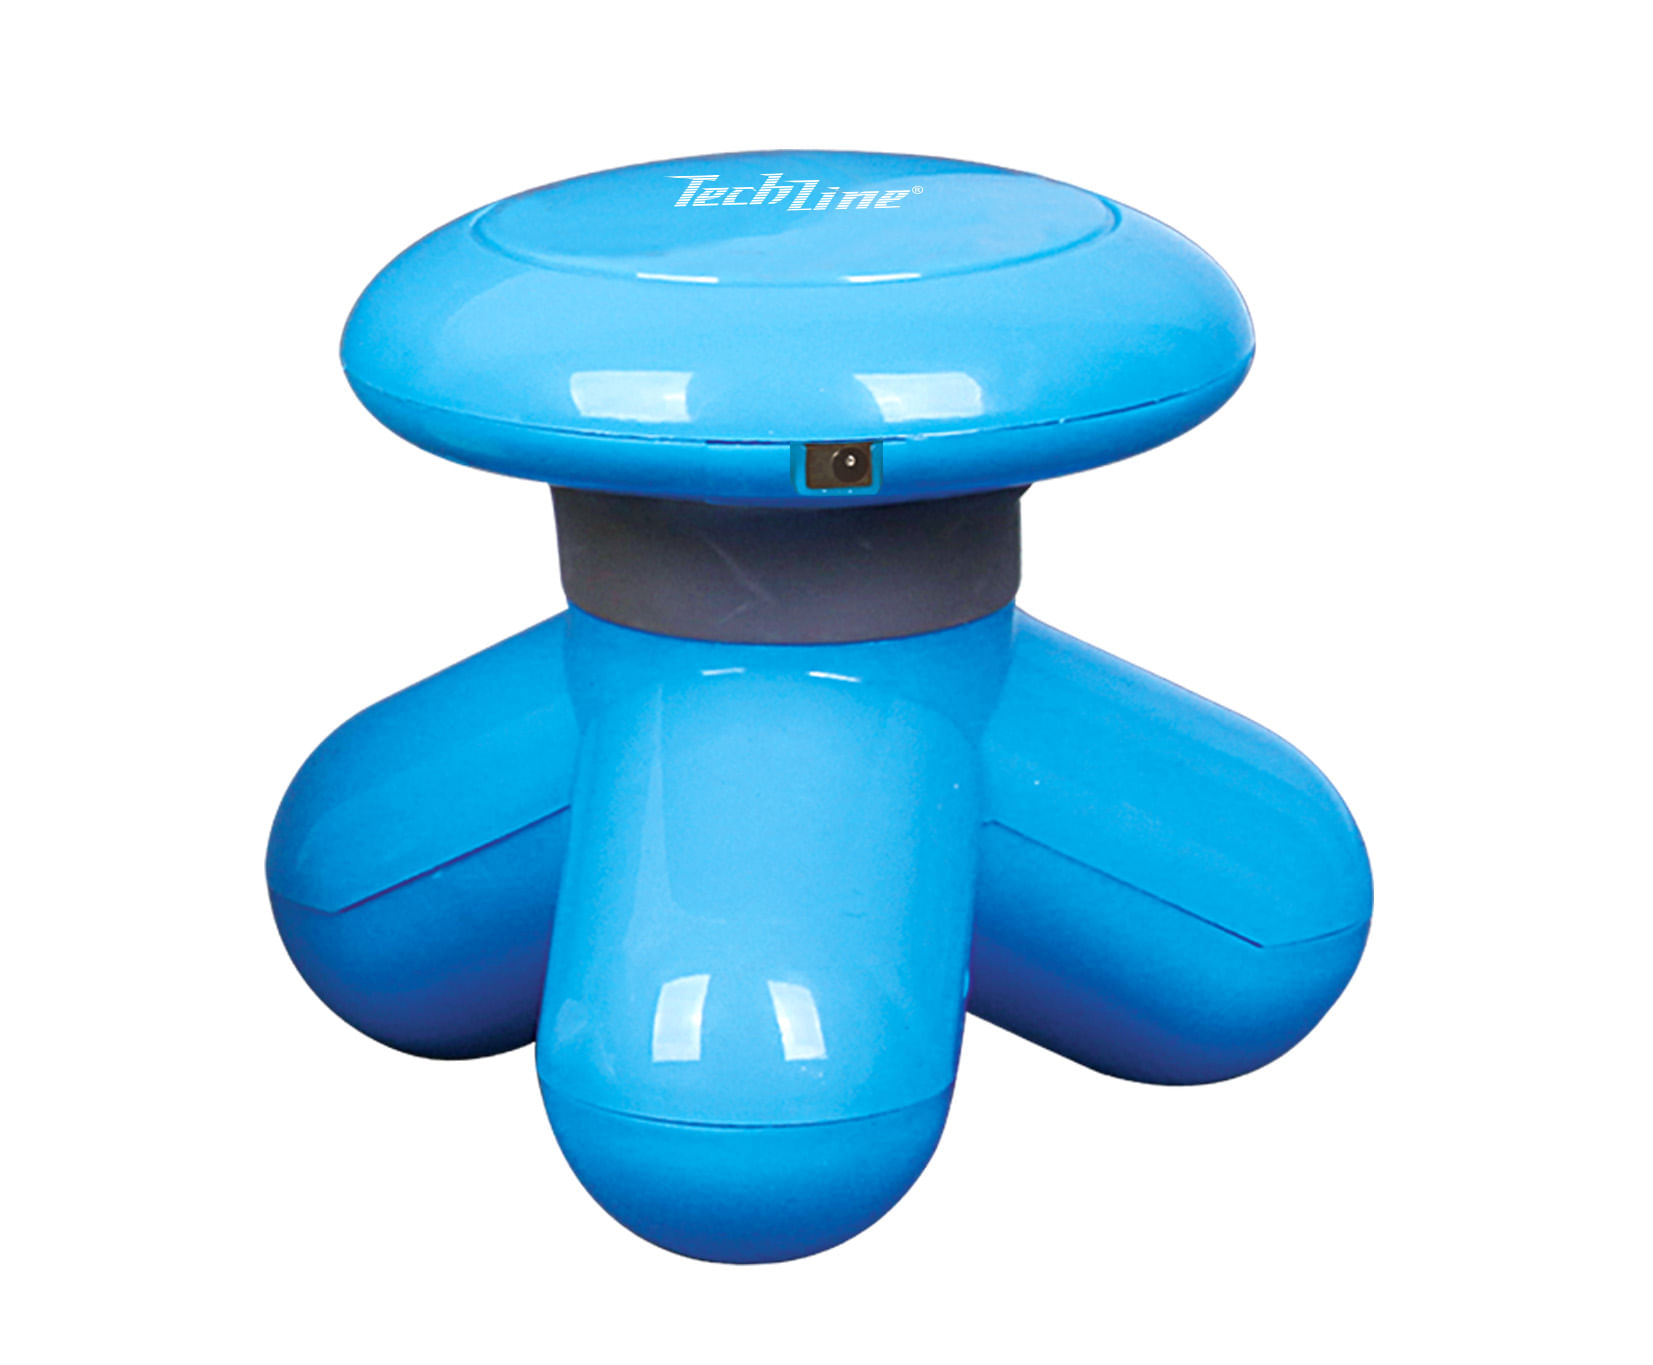 MINI MASSAGEADOR AZUL TECHLINE MASSAGEADOR DE MAO AZUL MS1000 TECHLINE